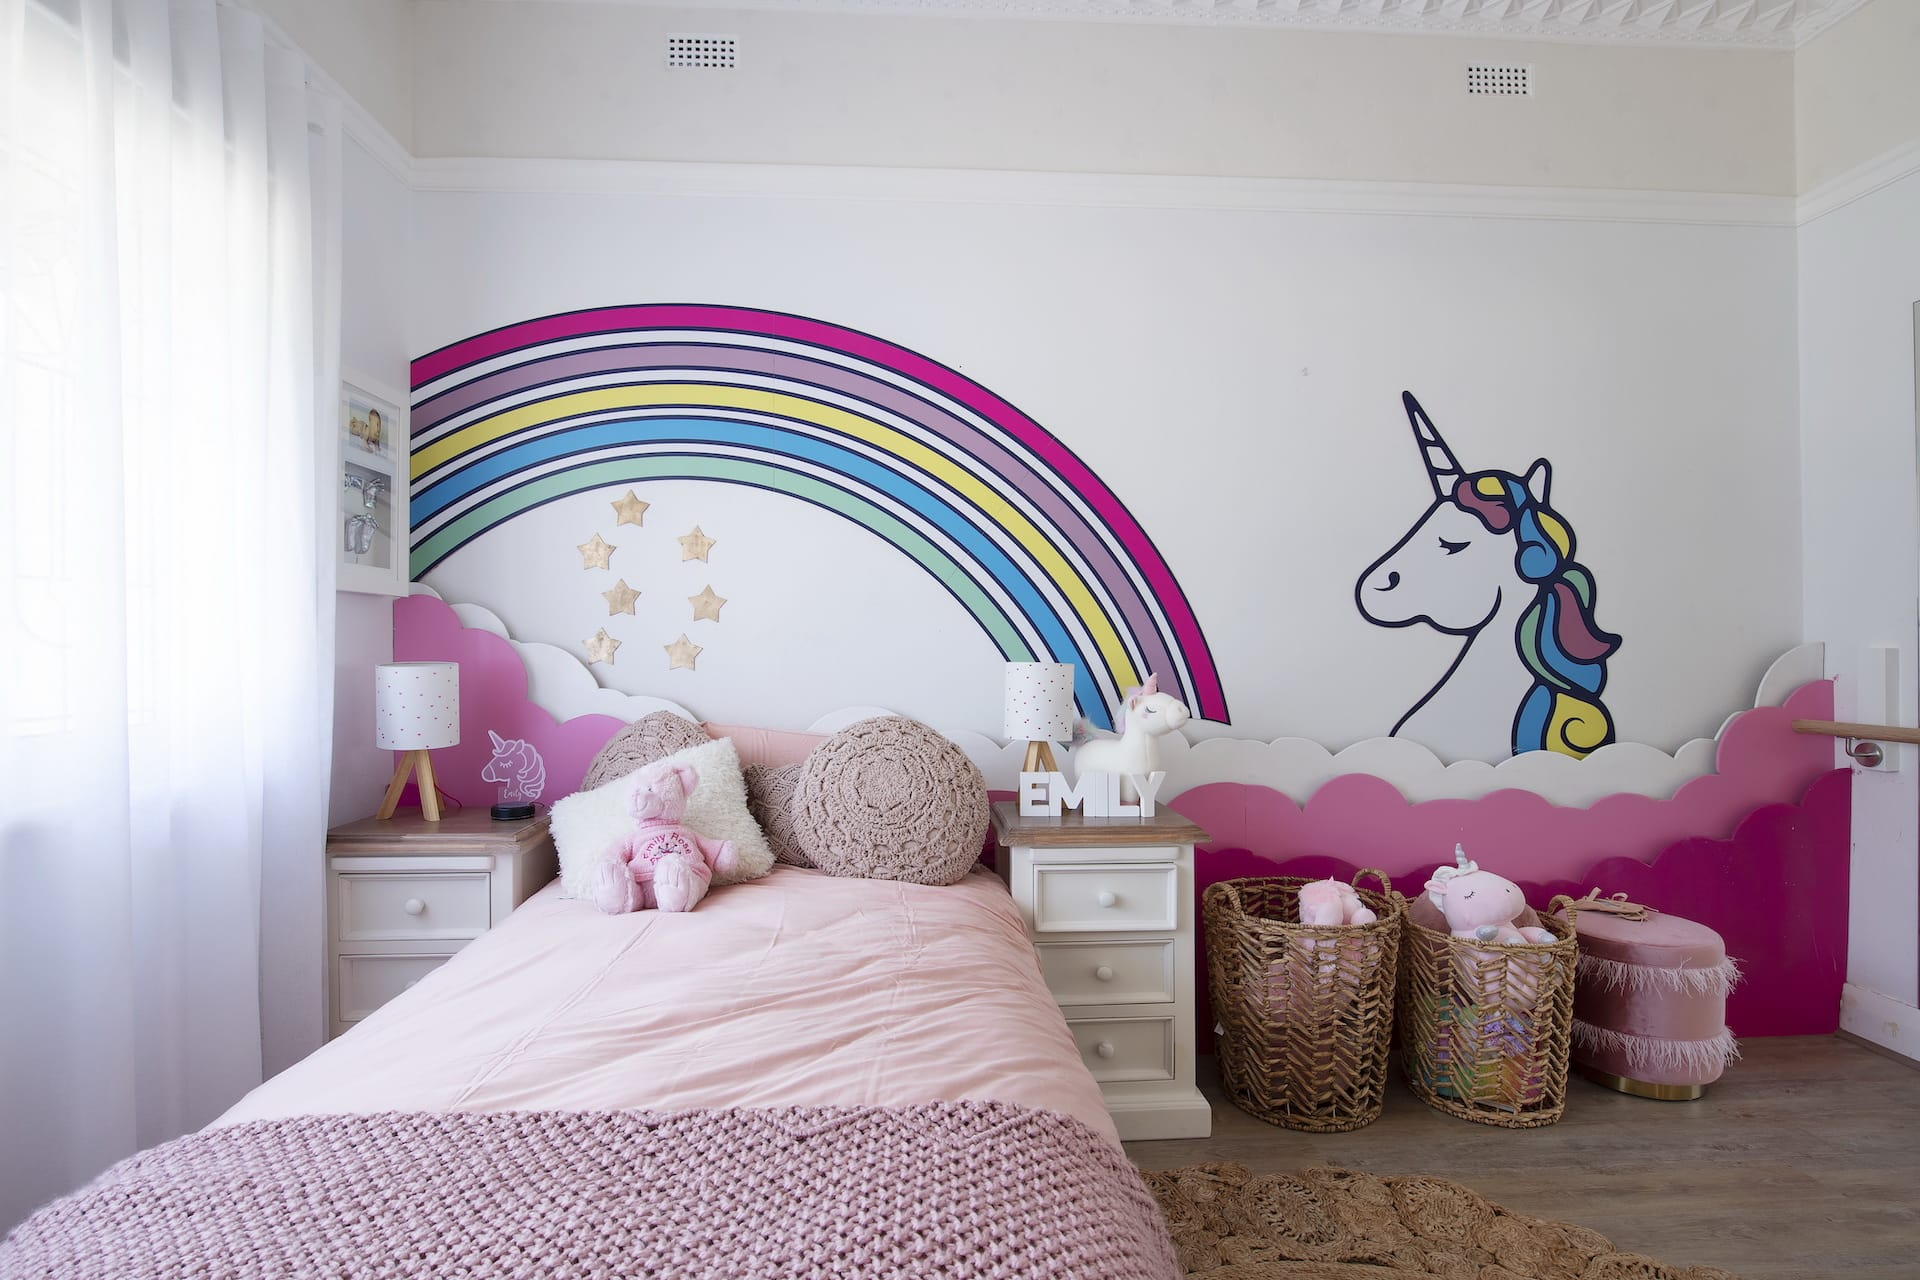 house rules 2020 tanya and dave reveal girls bedroom with rainbow mural and unicorn decal